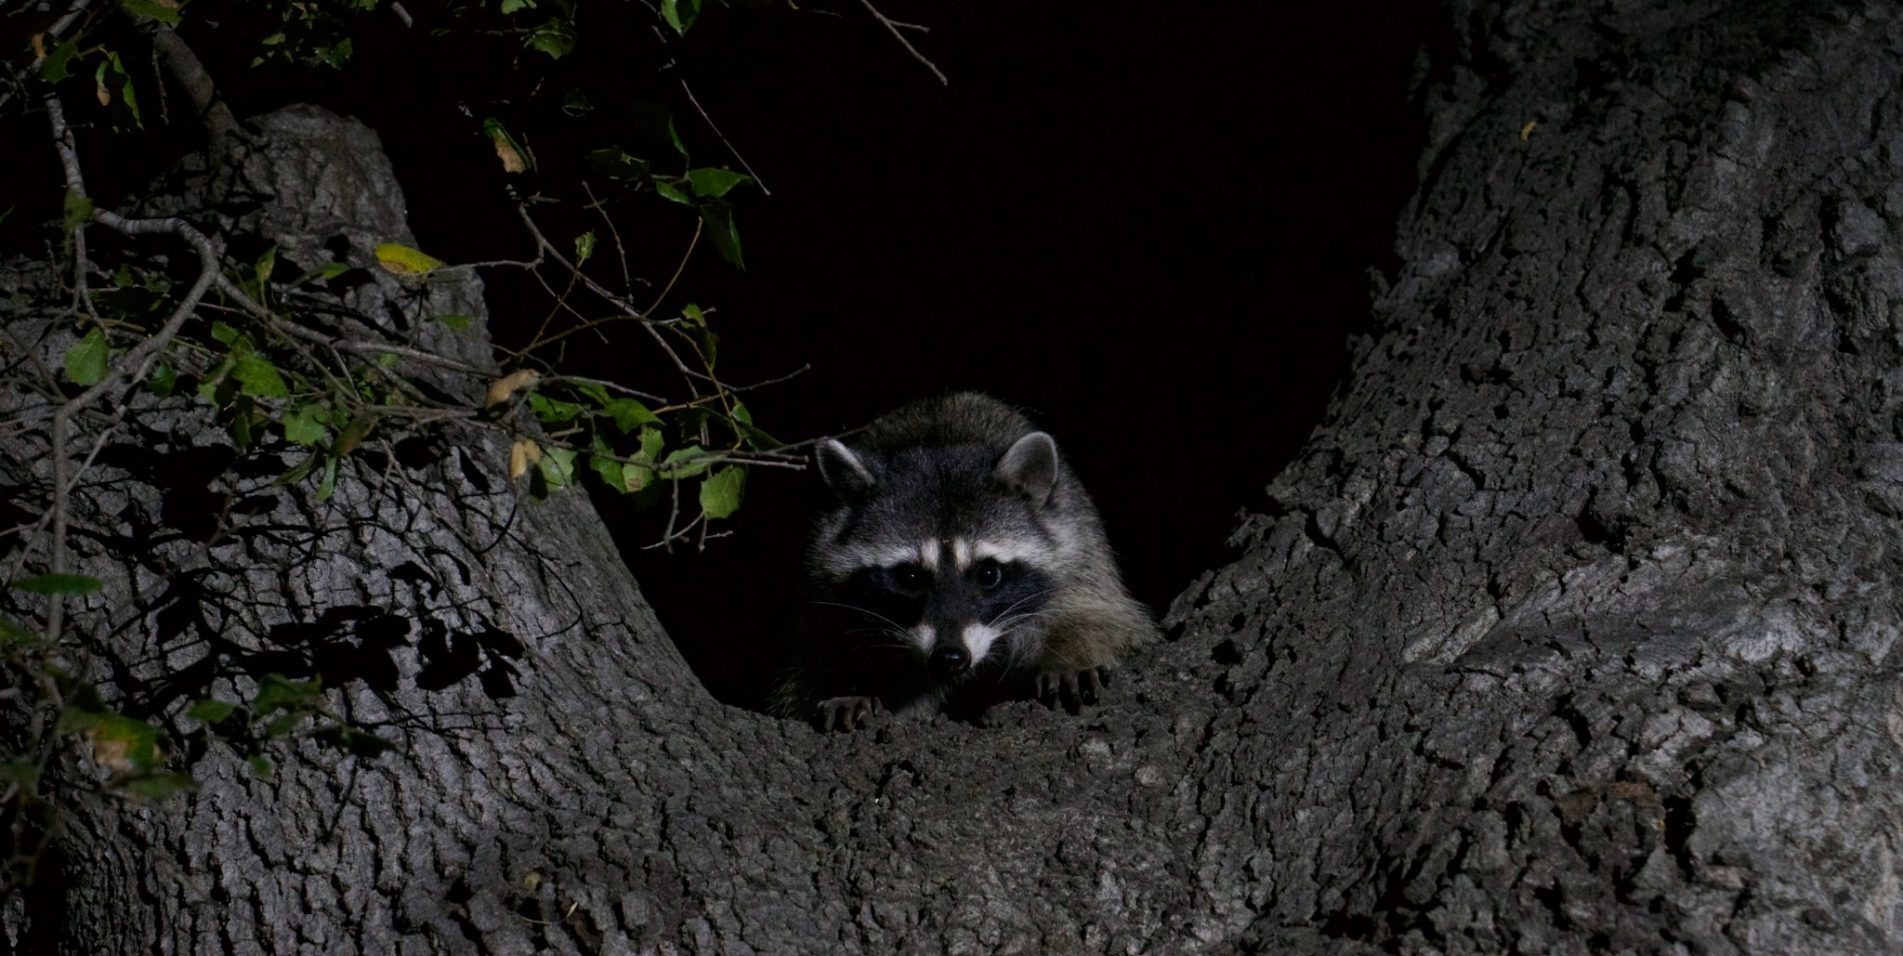 Nocturnal raccoon climbing a tree at night